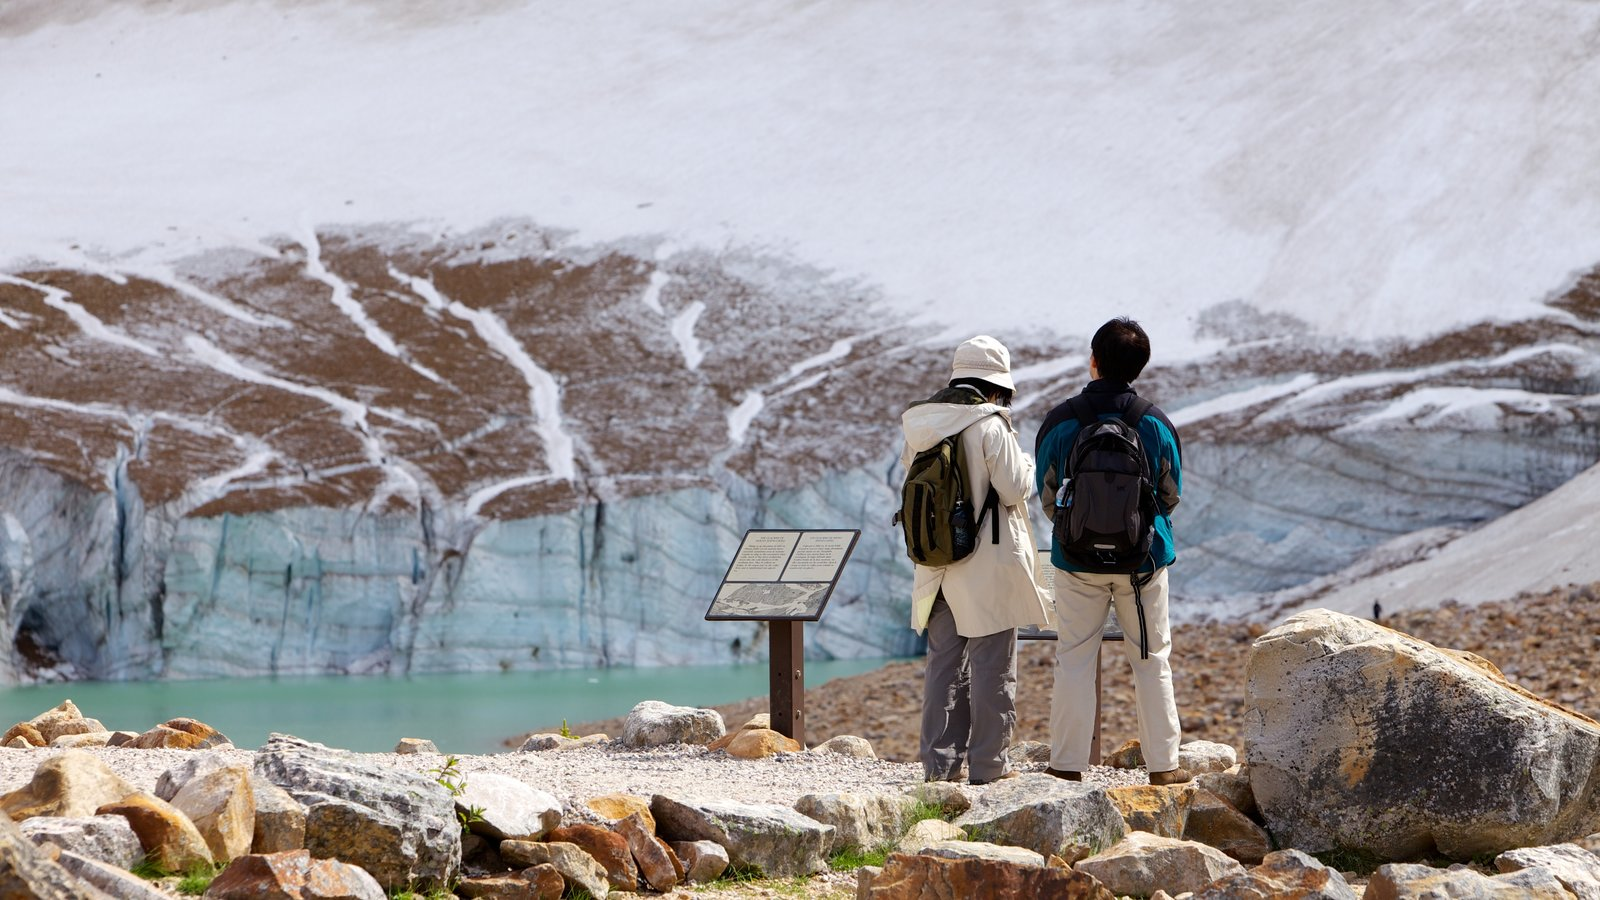 Mount Edith Cavell which includes landscape views, snow and mountains